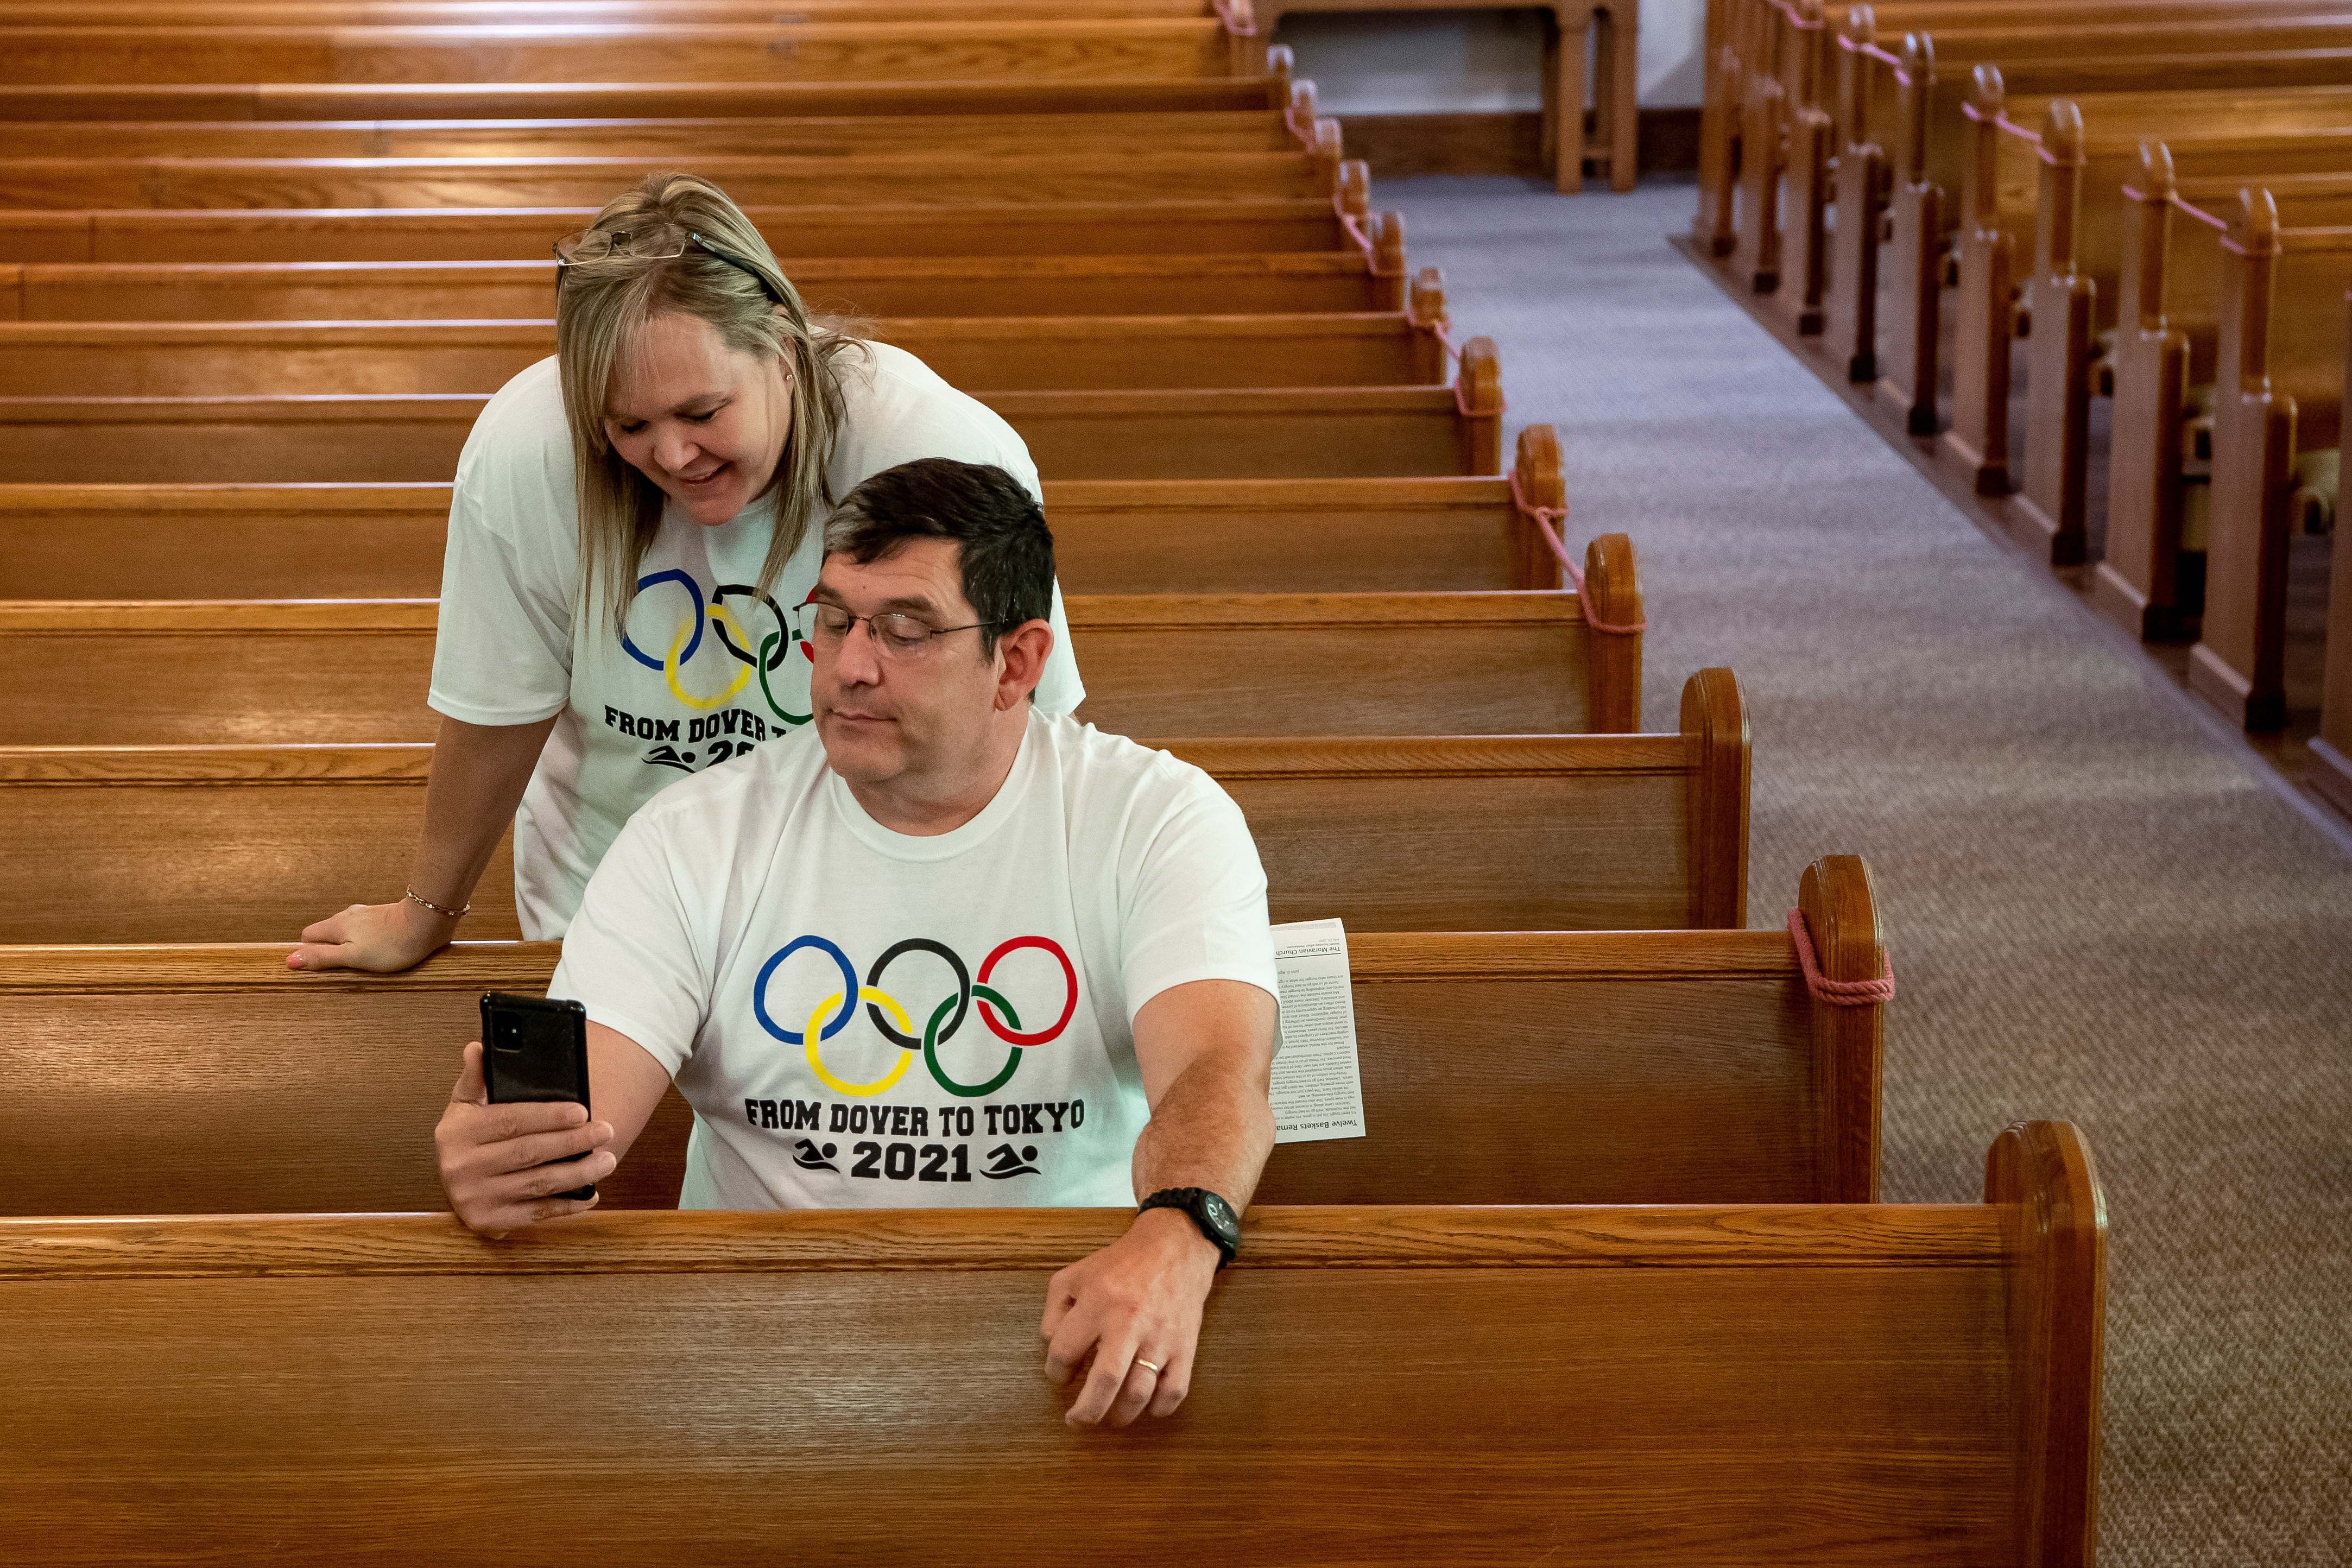 Ryan Armstrong and Edie Armstrong video chat with their son U.S. Olympic swimmer Hunter Armstrong, after church services at Dover First Moravian Church, before Hunter goes to bed and prepares to compete in the men's 100m backstroke semi-final the following day at the 2021 Olympic Games, in Dover, Ohio, U.S., July 25, 2021. Picture taken July 25, 2021. REUTERS/Gaelen Morse